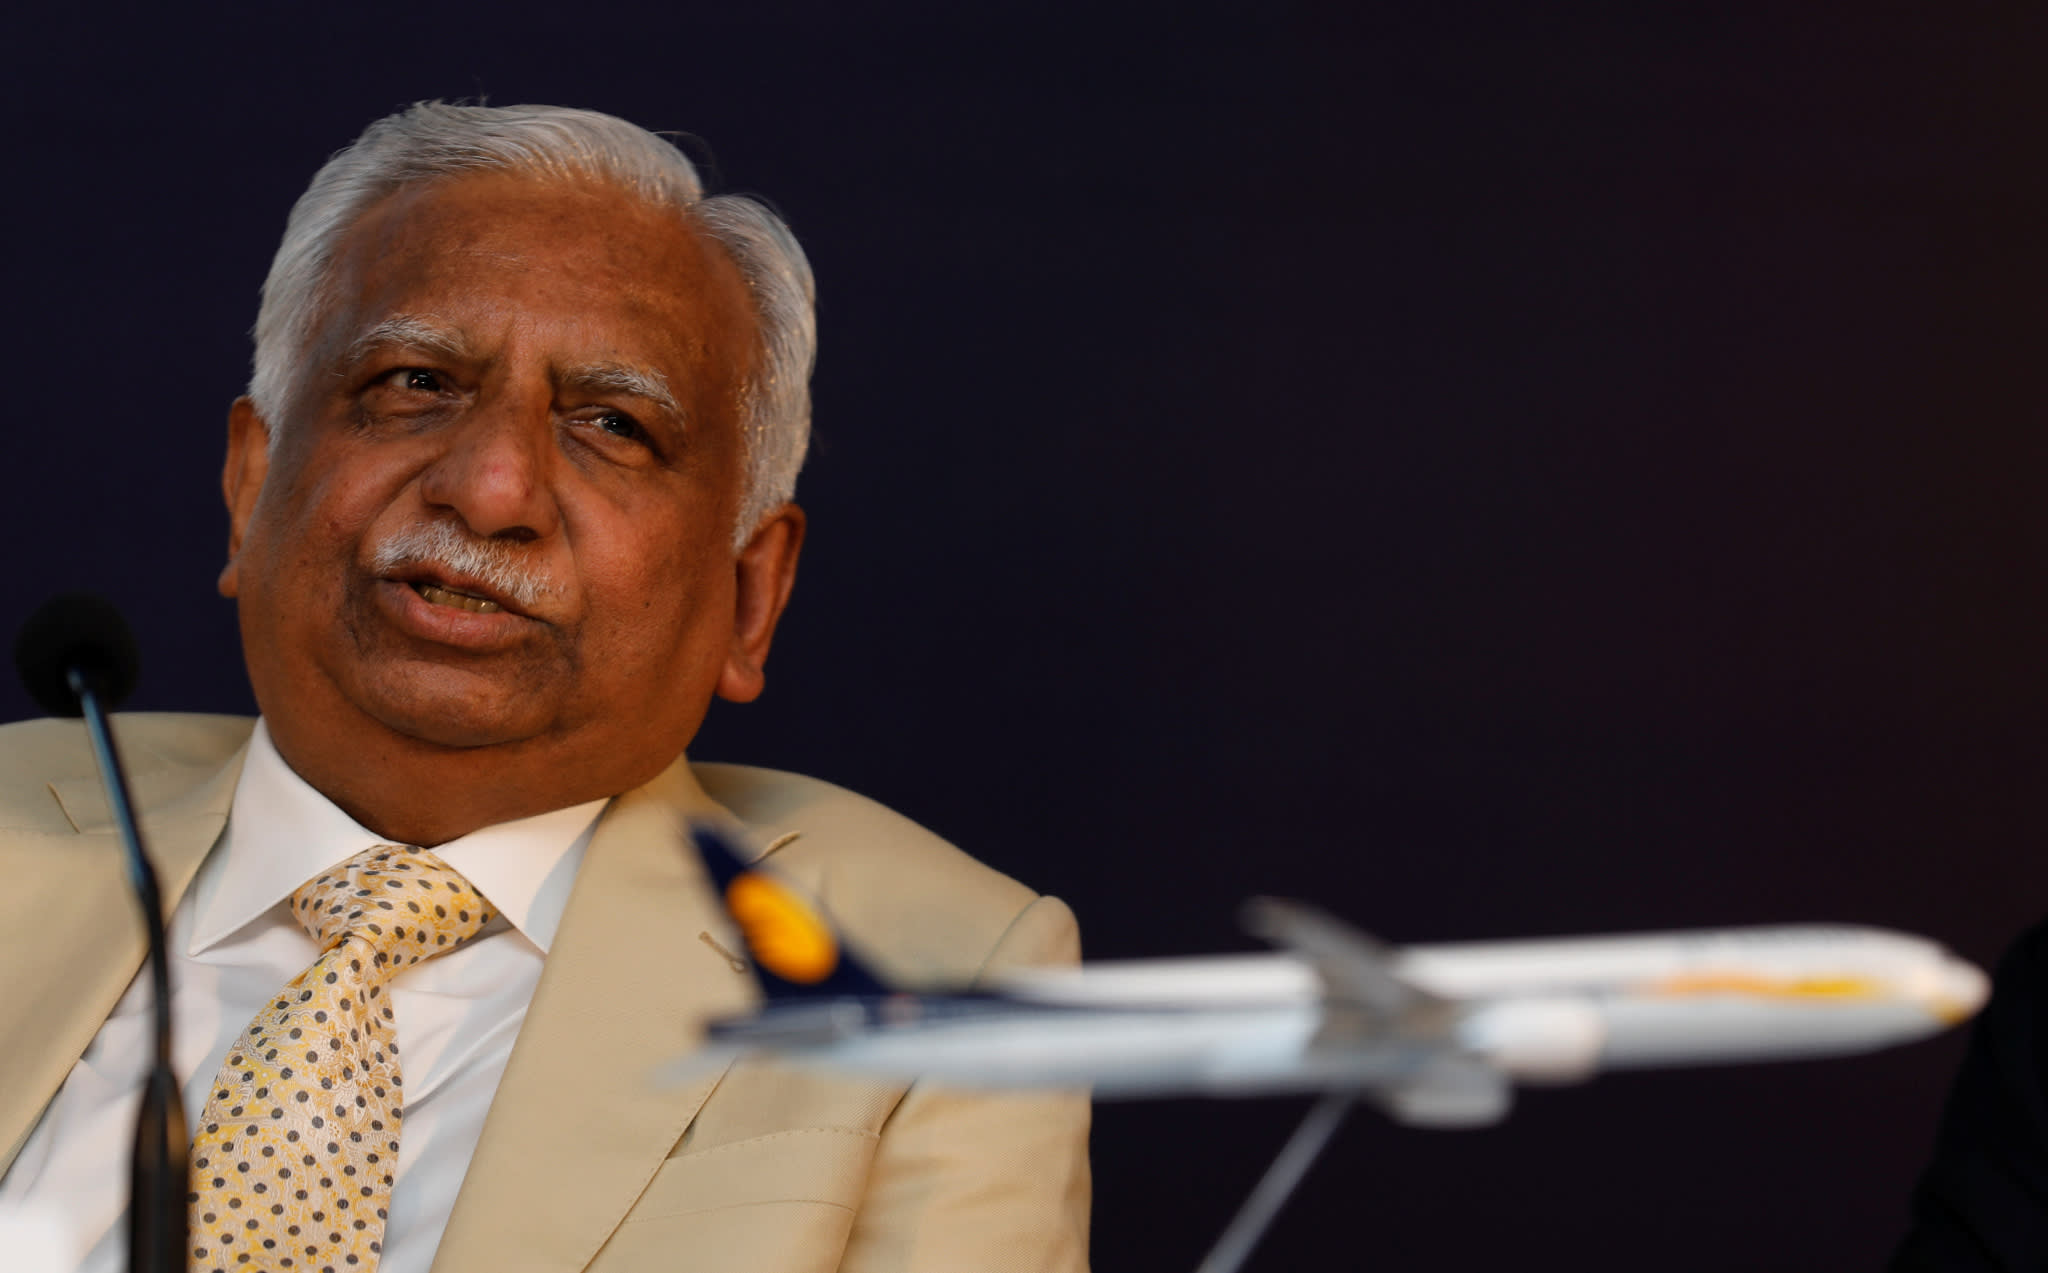 Naresh Goyal, chairman of Jet Airways, speaks during a news conference in Mumbai in November 2017.